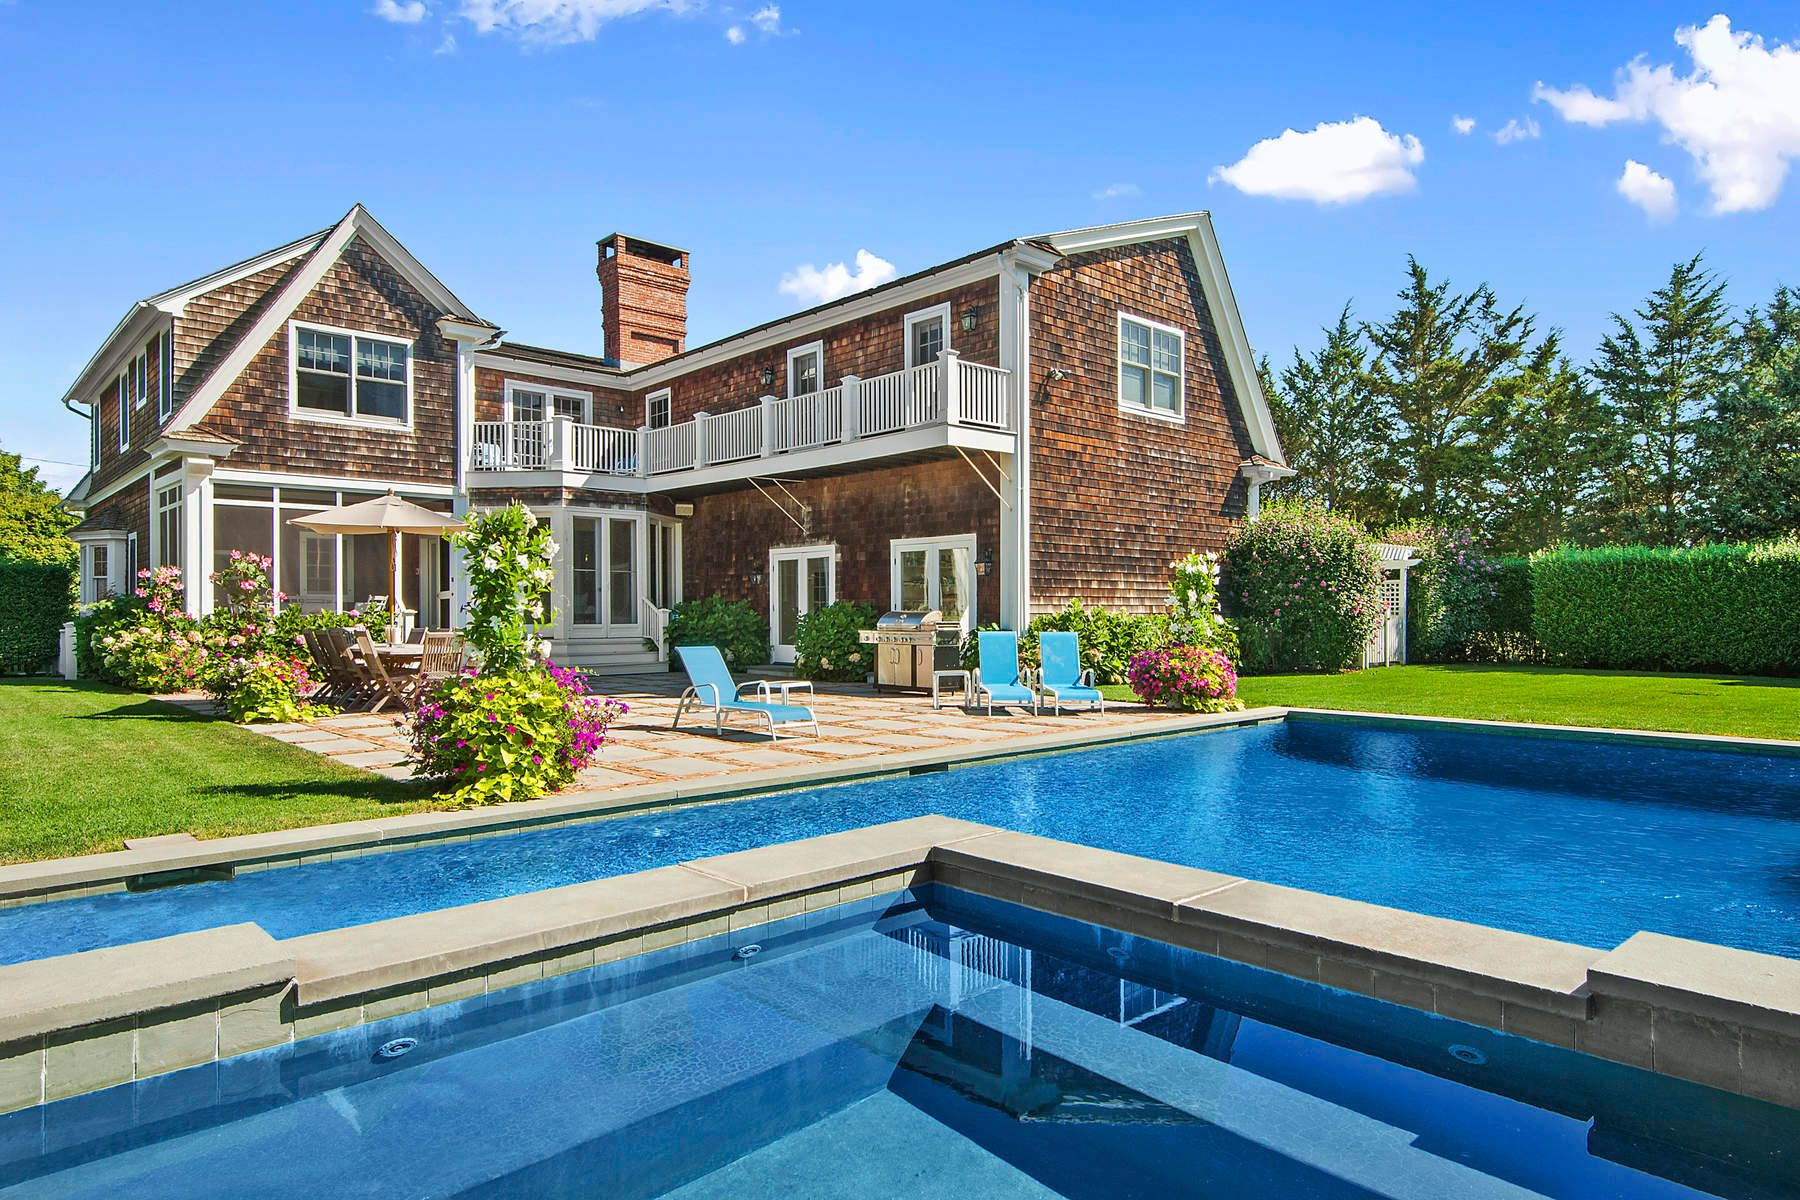 Single Family Home for Rent at On The Edge Of Southampton Village 66 Wiltshire Street Southampton, New York 11968 United States